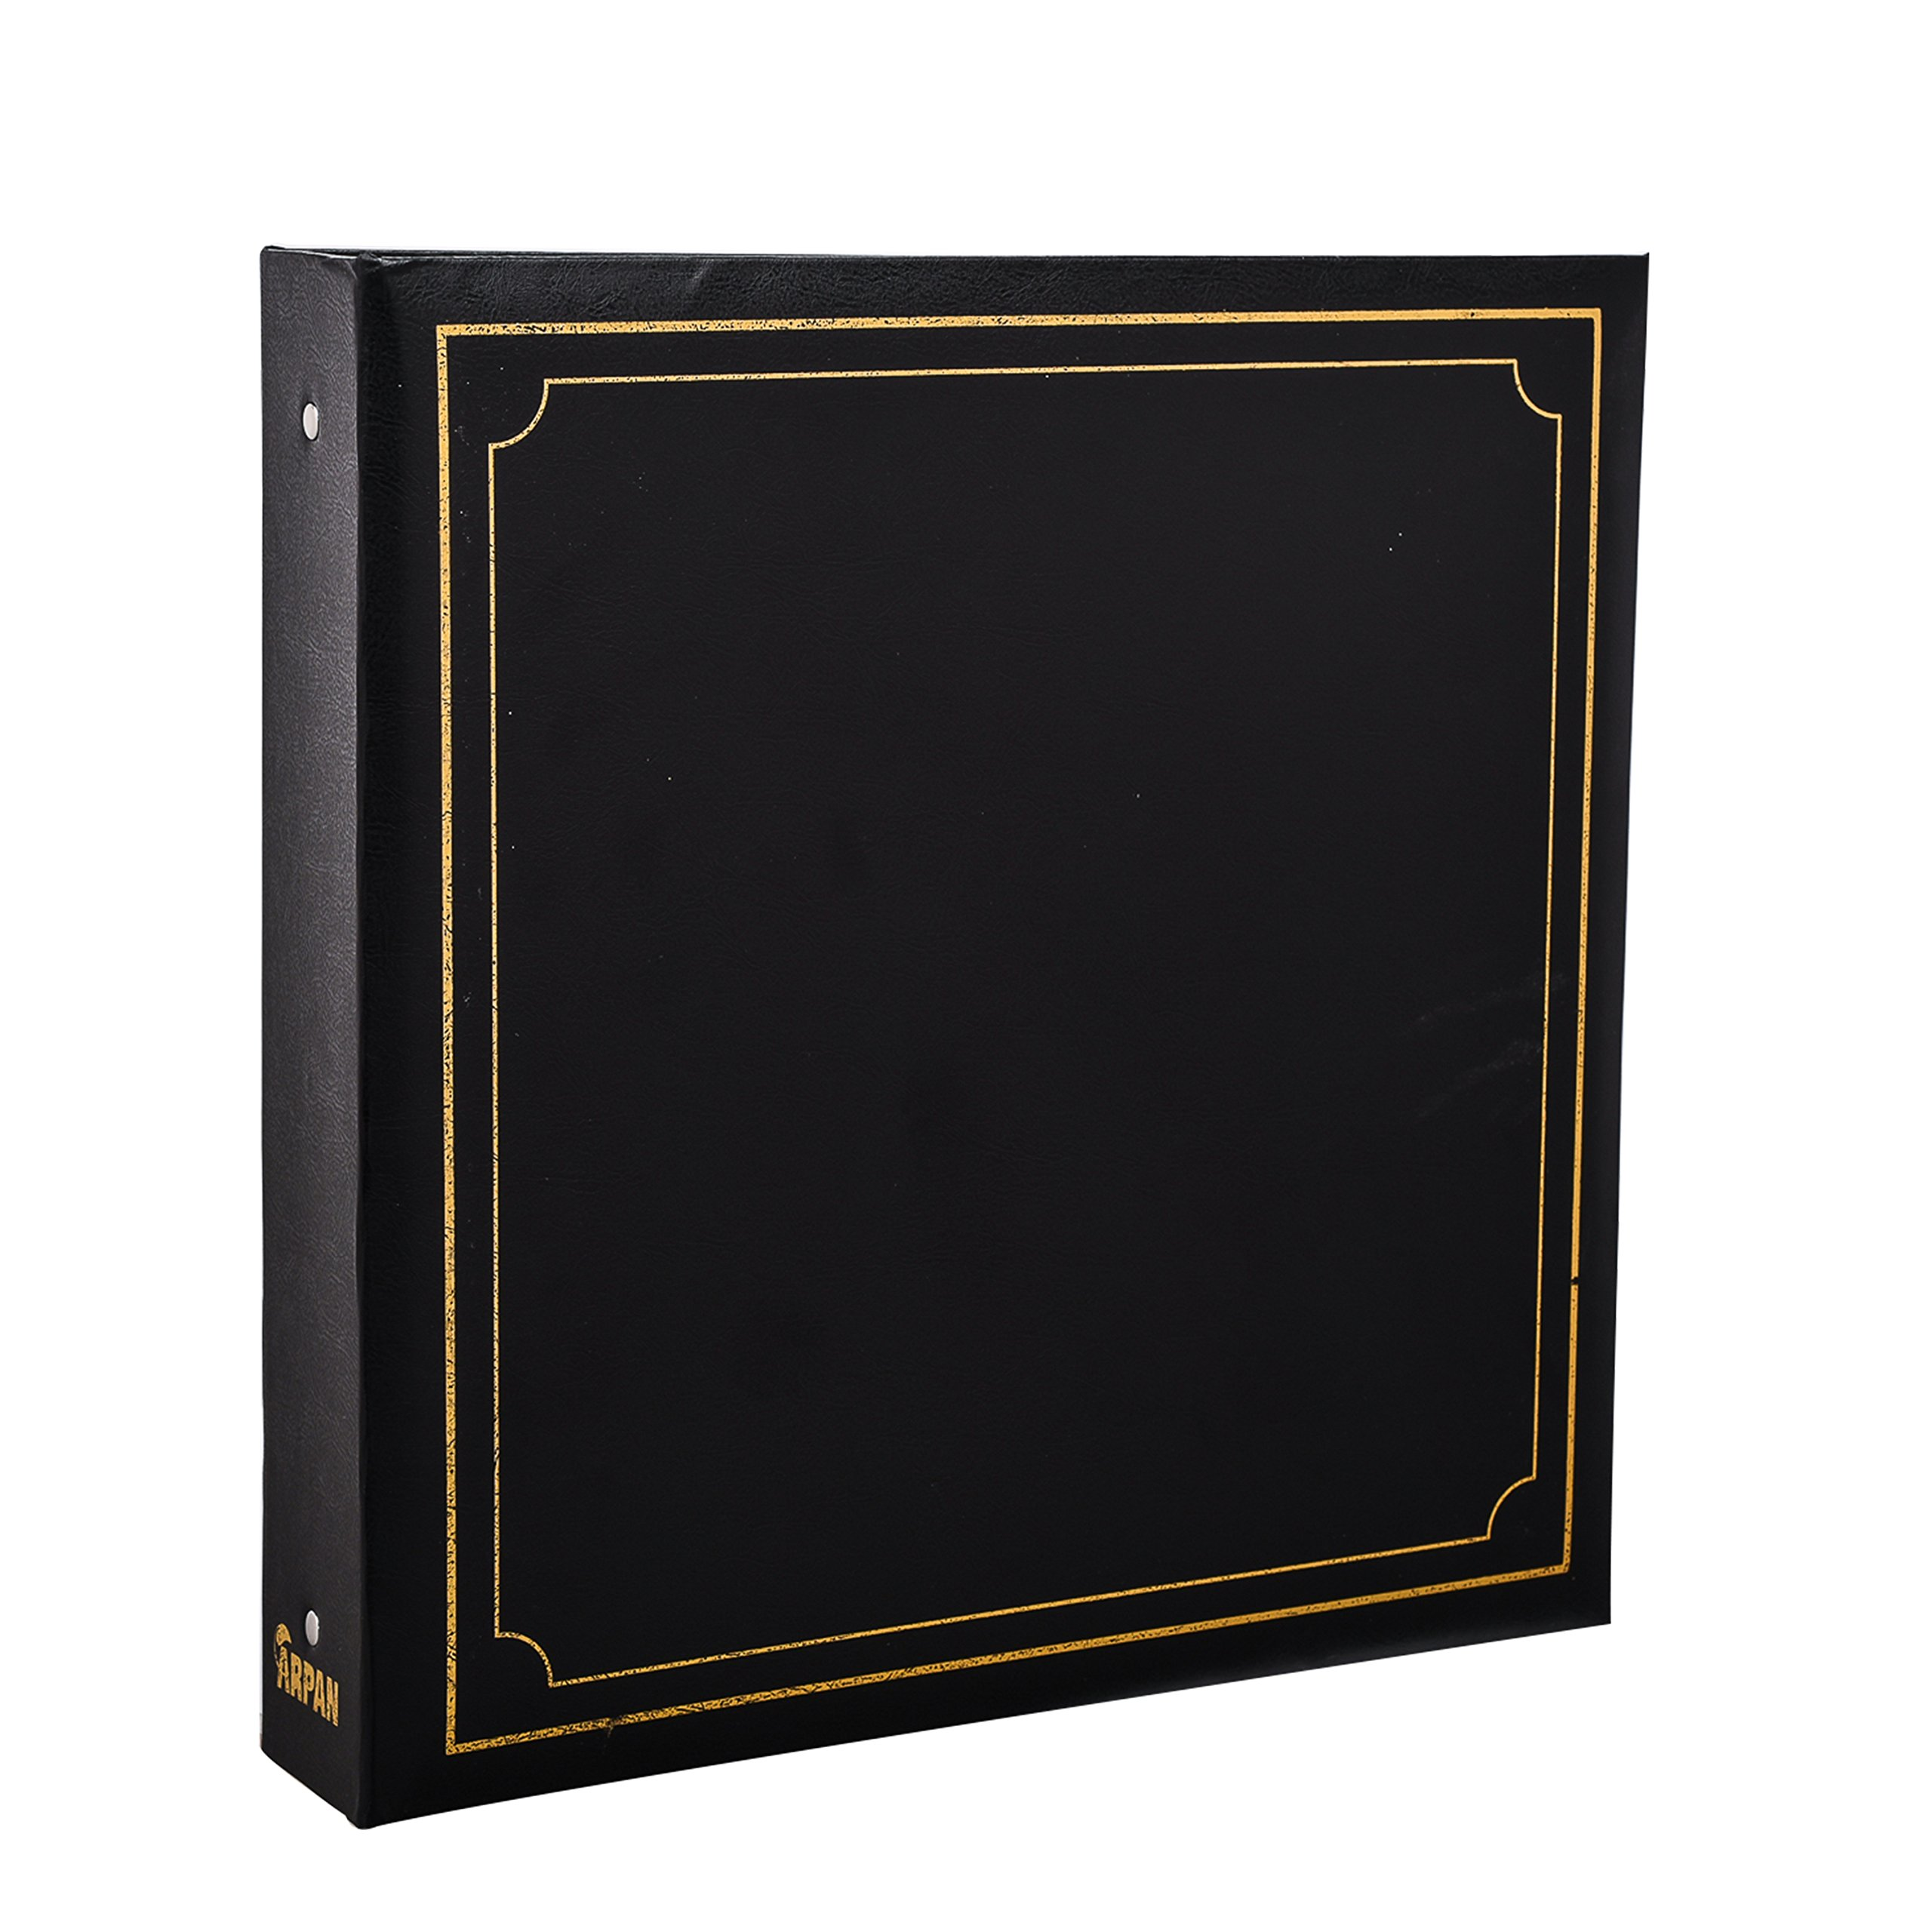 ARPAN Large 6x4 Photo Album for 500 Photo's - Black Padded Leather Look